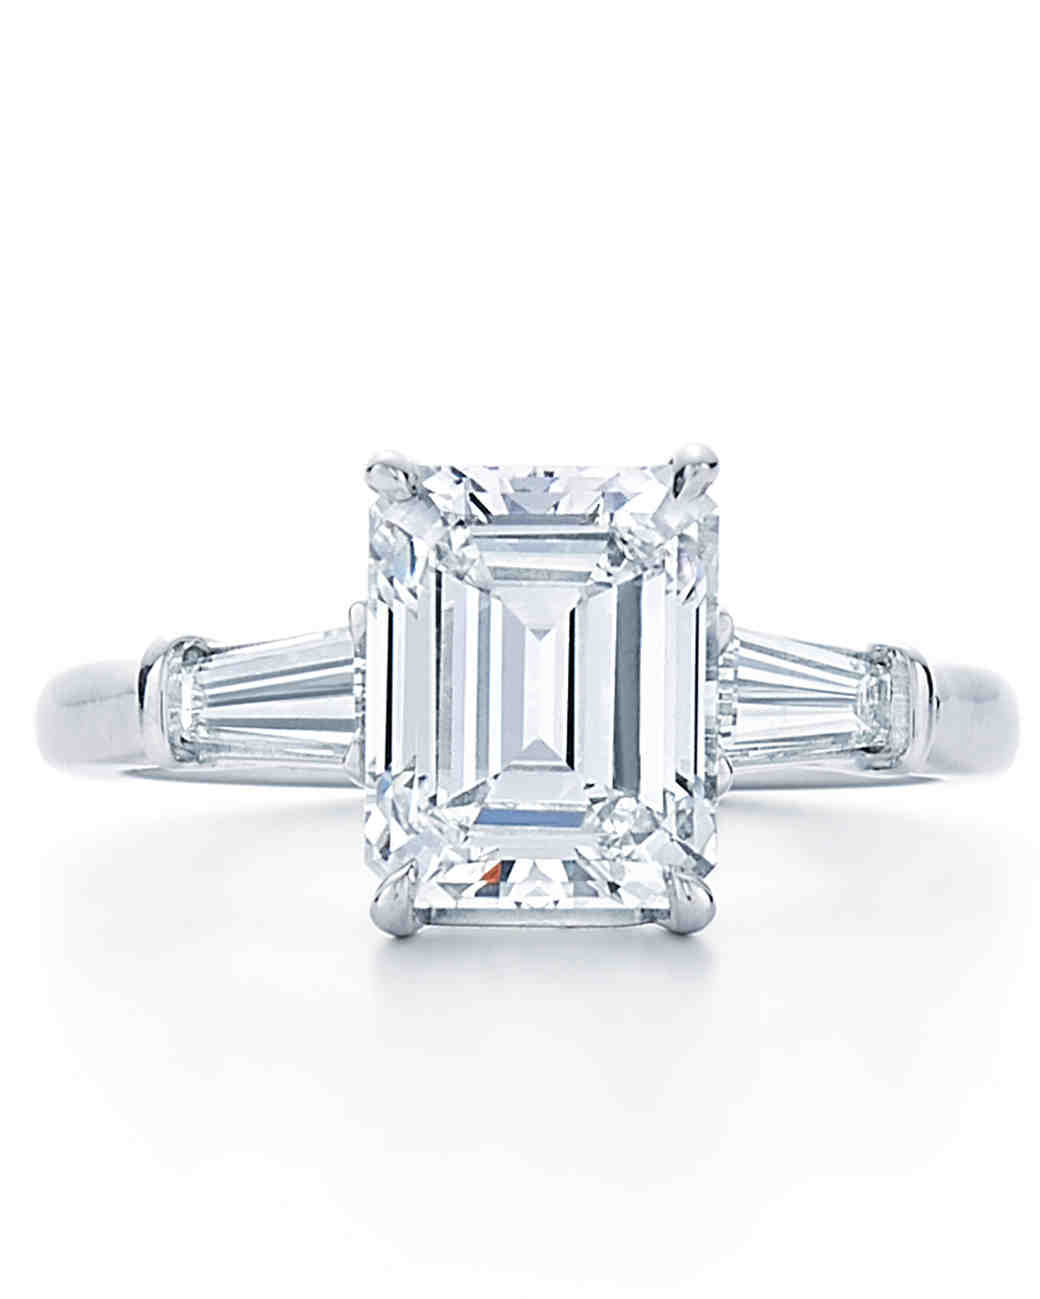 engagement finished patterson ashoka product markpatterson mark kwiat solitaire diamond cut bezel rings